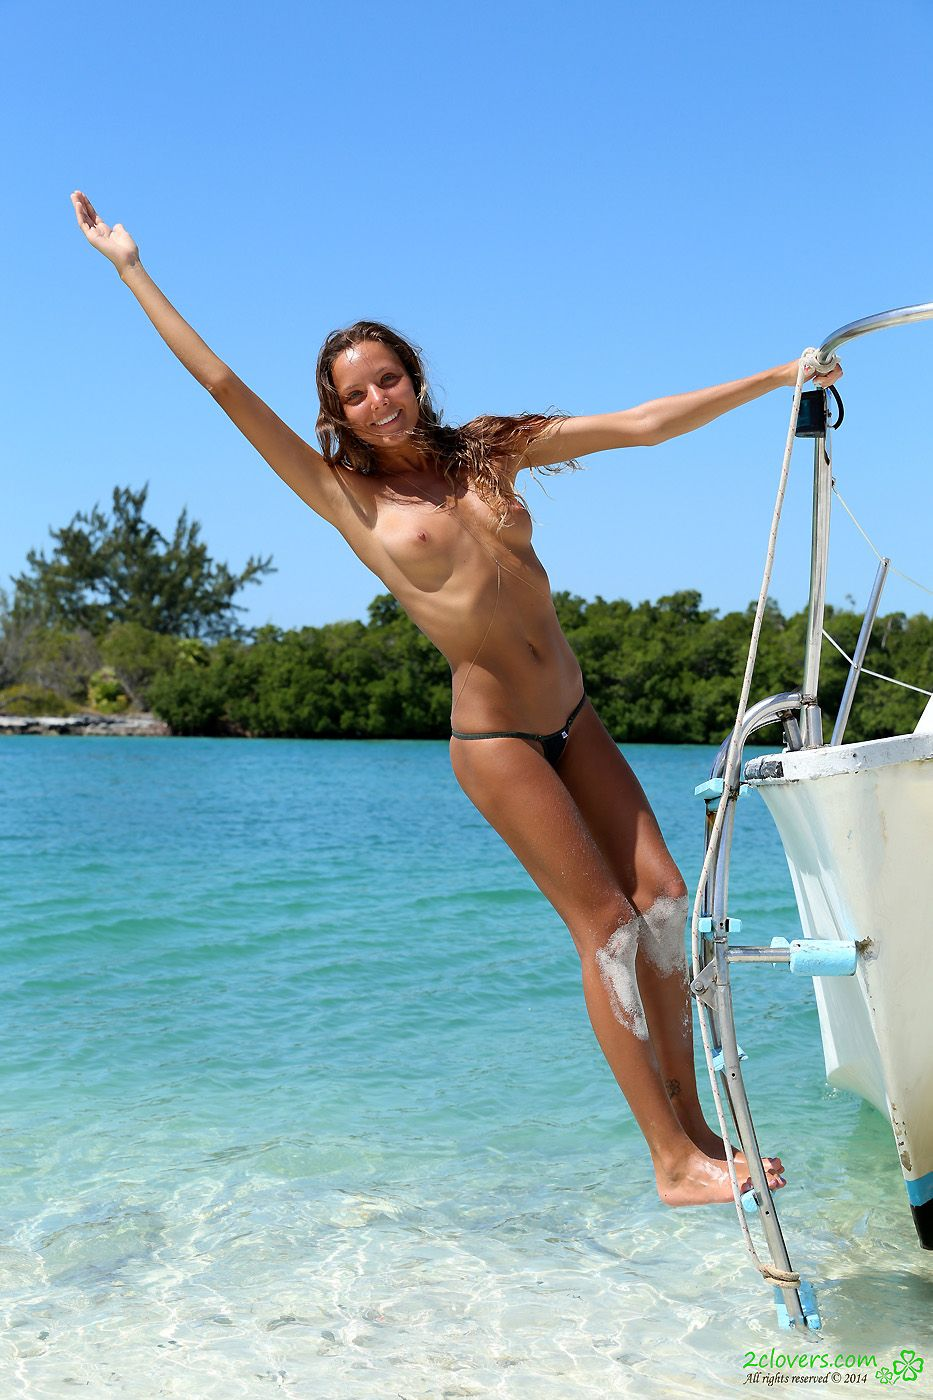 Nude In Boat  Tumblr  Ladies On Board  Pinterest -6229